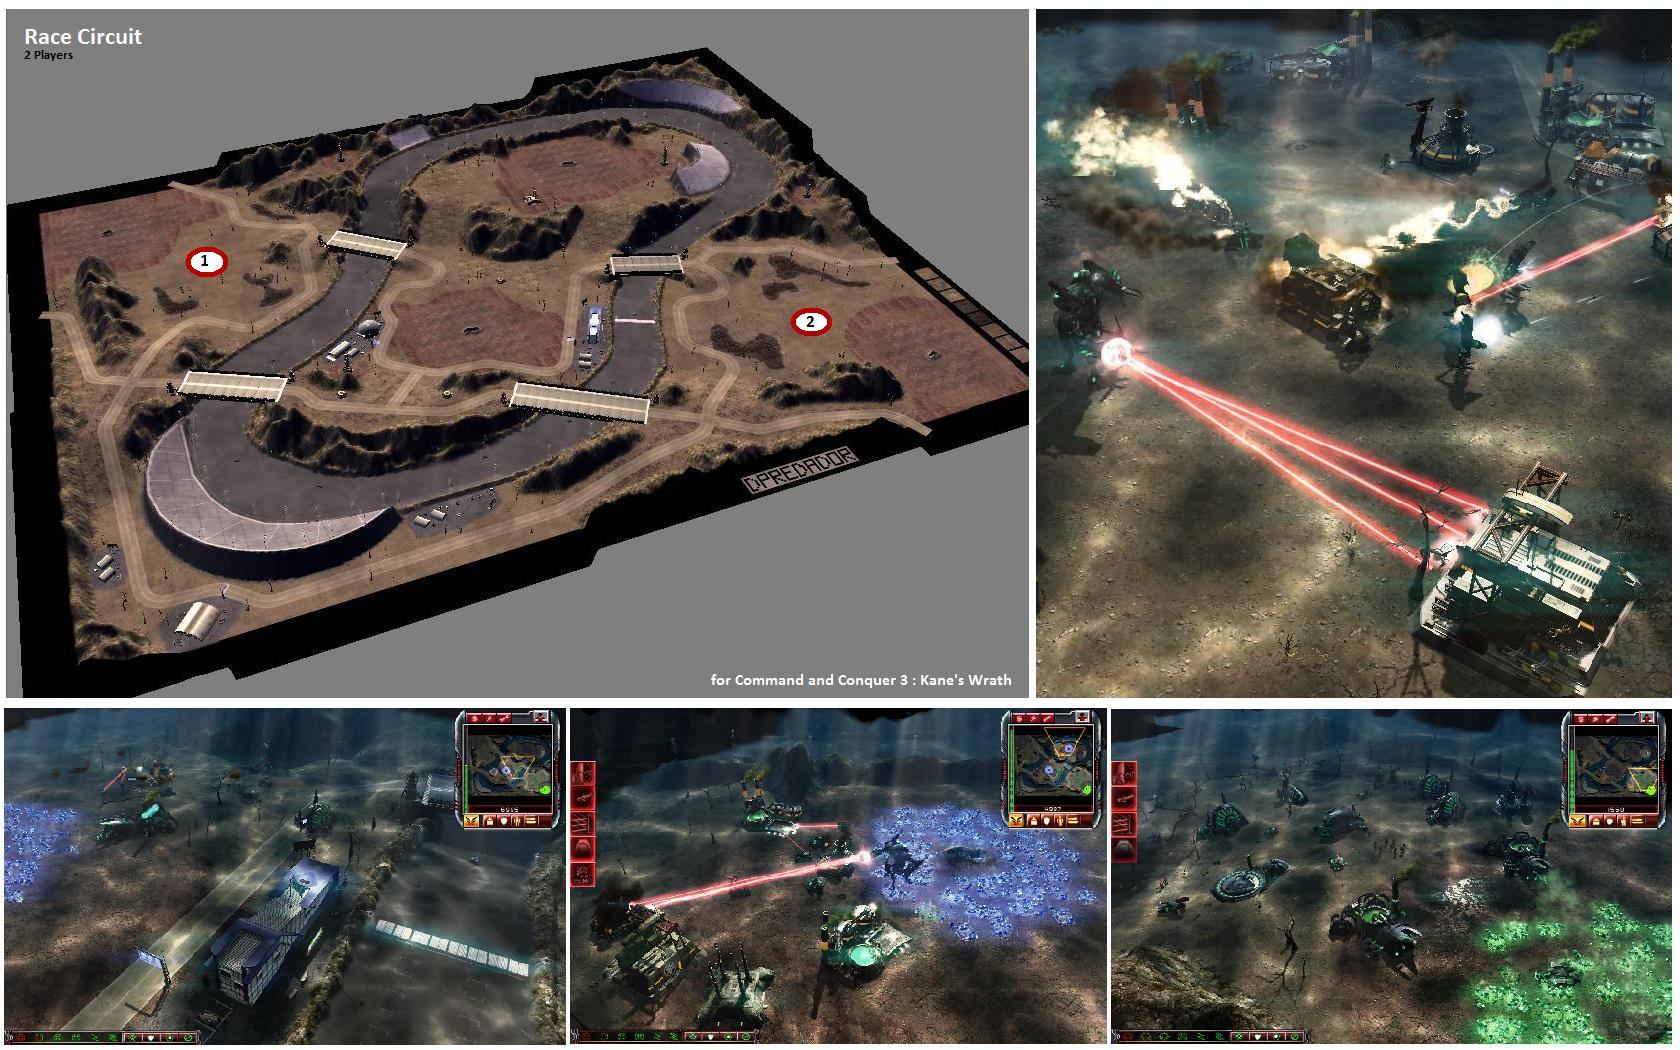 command and conquer 3 kanes wrath map editor download